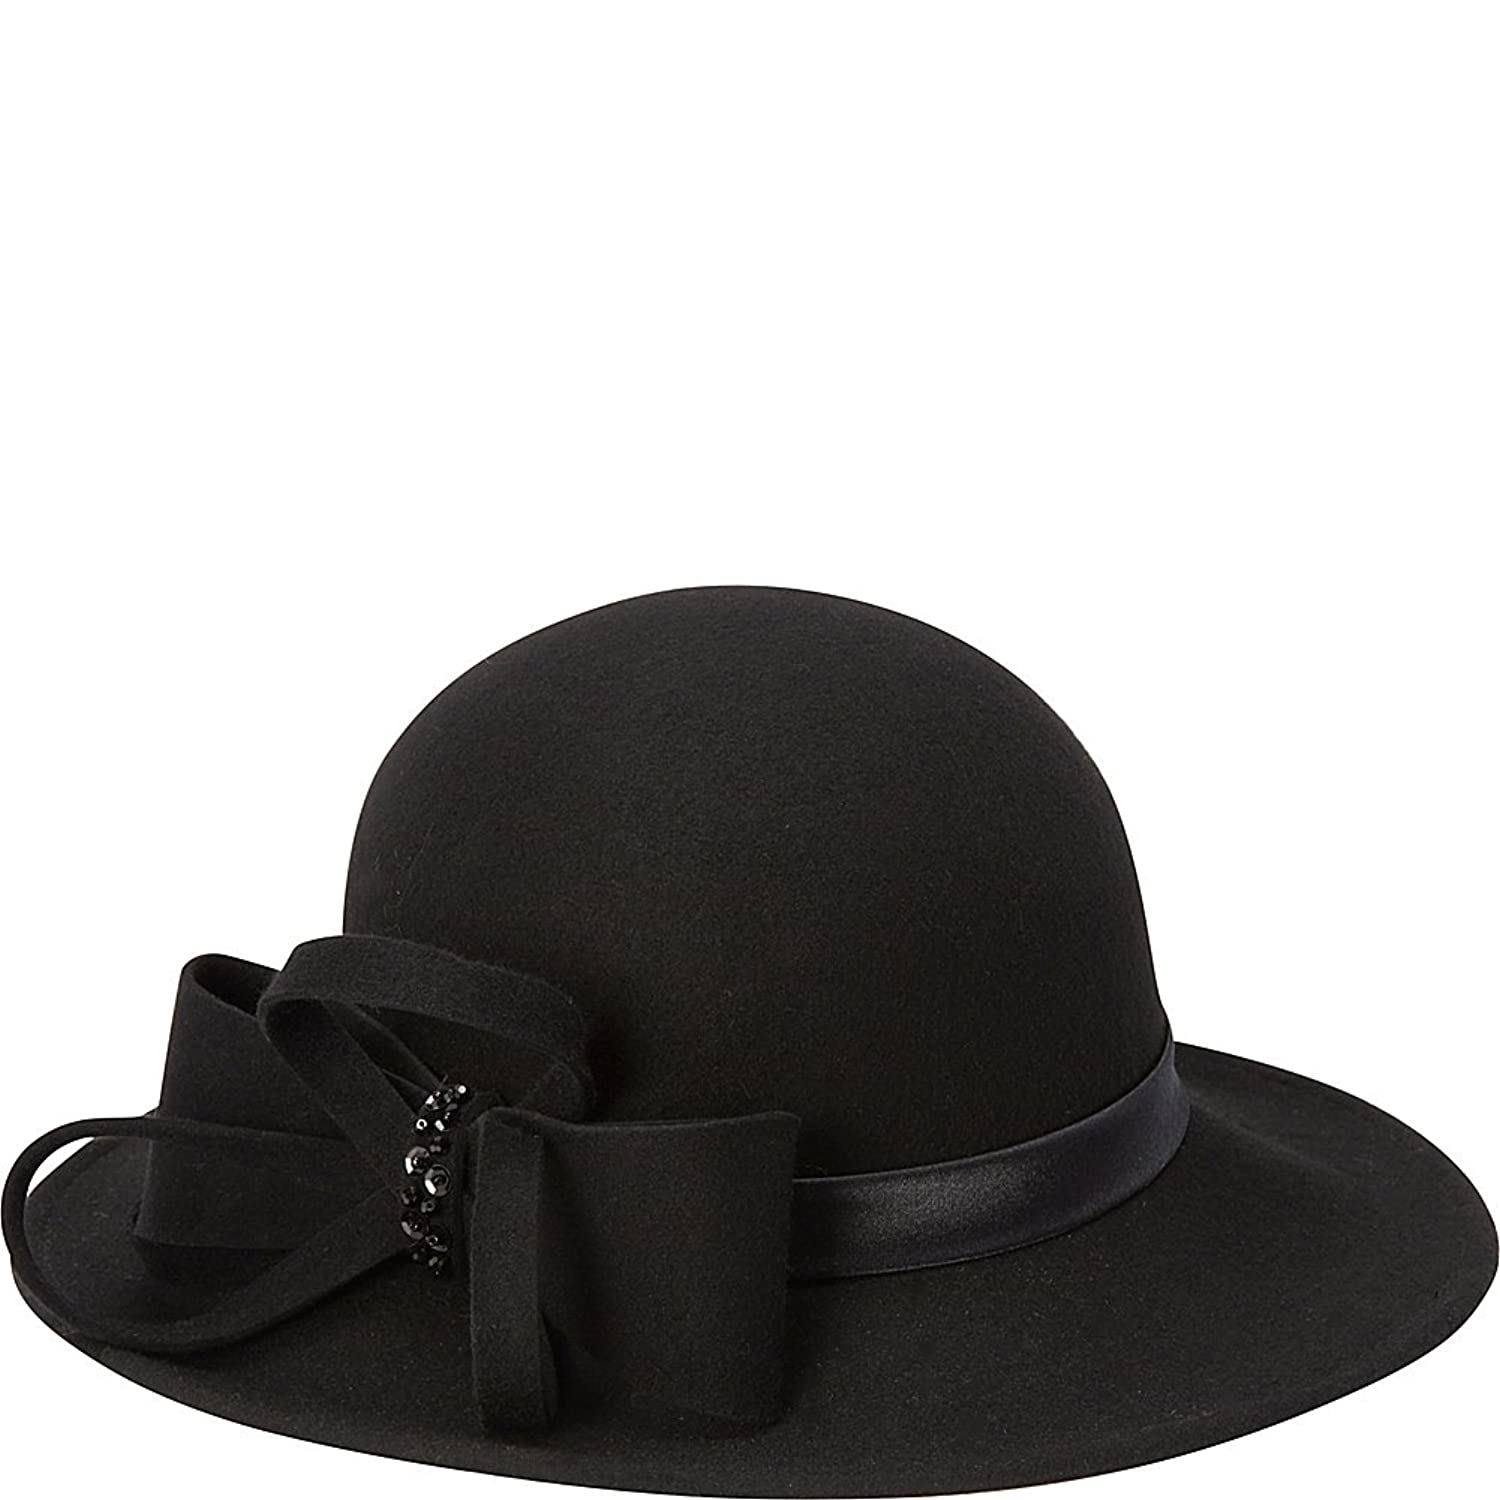 Edwardian Style Hats, Titanic Hats, Derby Hats Betmar New York Frederica Felt Floppy Hat $56.09 AT vintagedancer.com